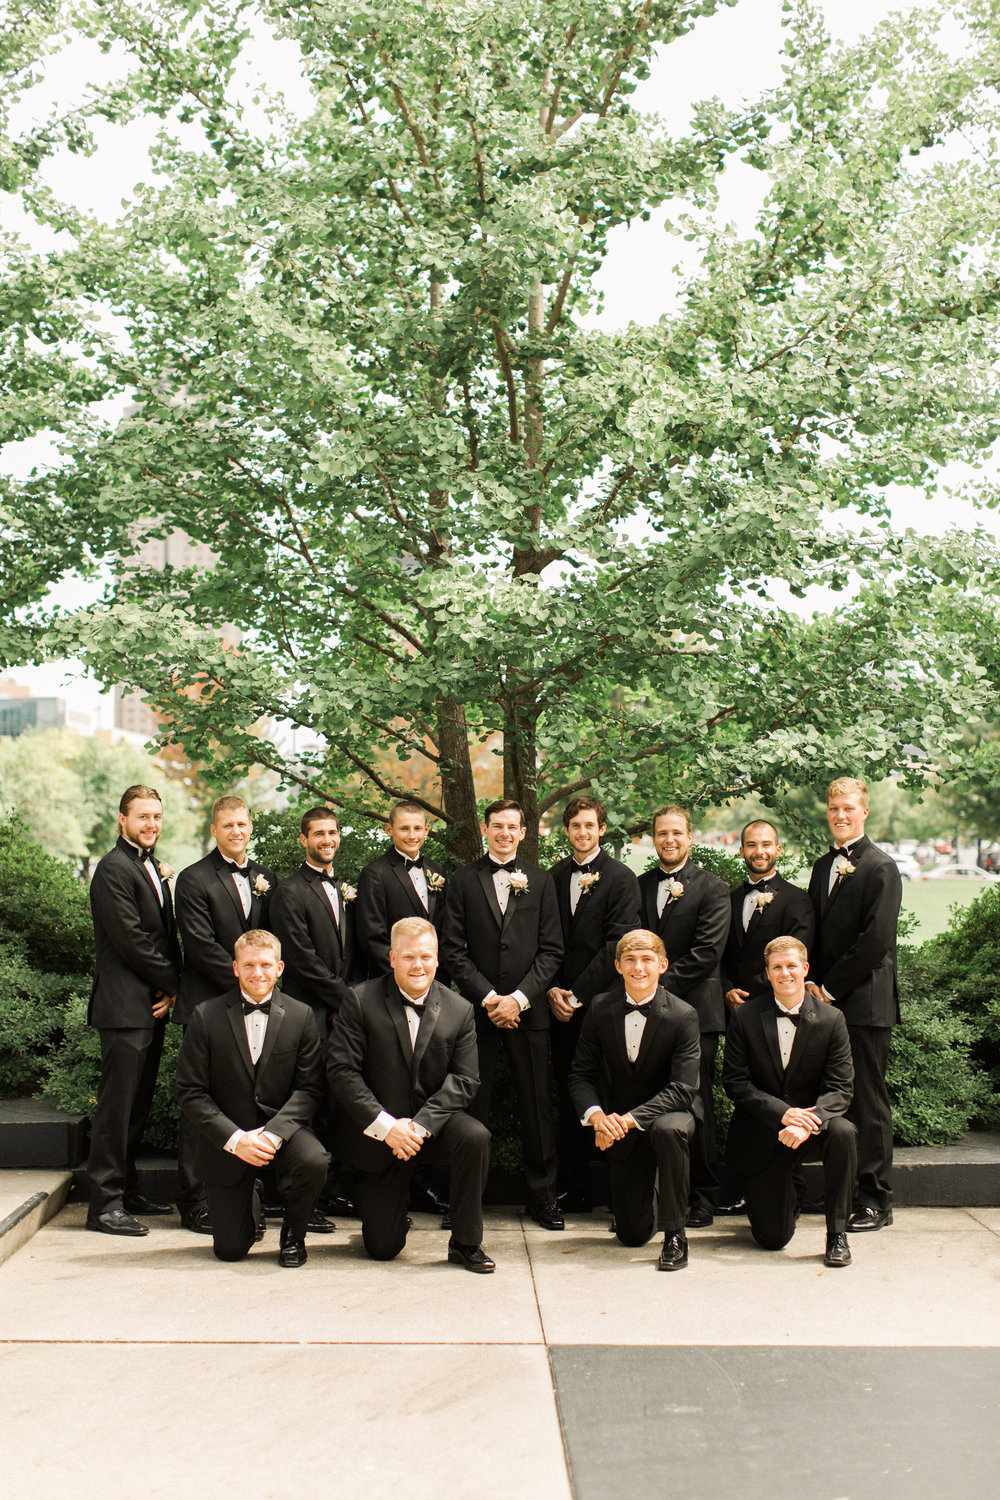 groomsman-iowa-wedding-iowa-venue-blush-white-pink-bridesmaids-dresses-downtown-desmoines-planned-mostly-becky-weddings-outdoor-bridal-party-photos-black-tux-black-tie-event